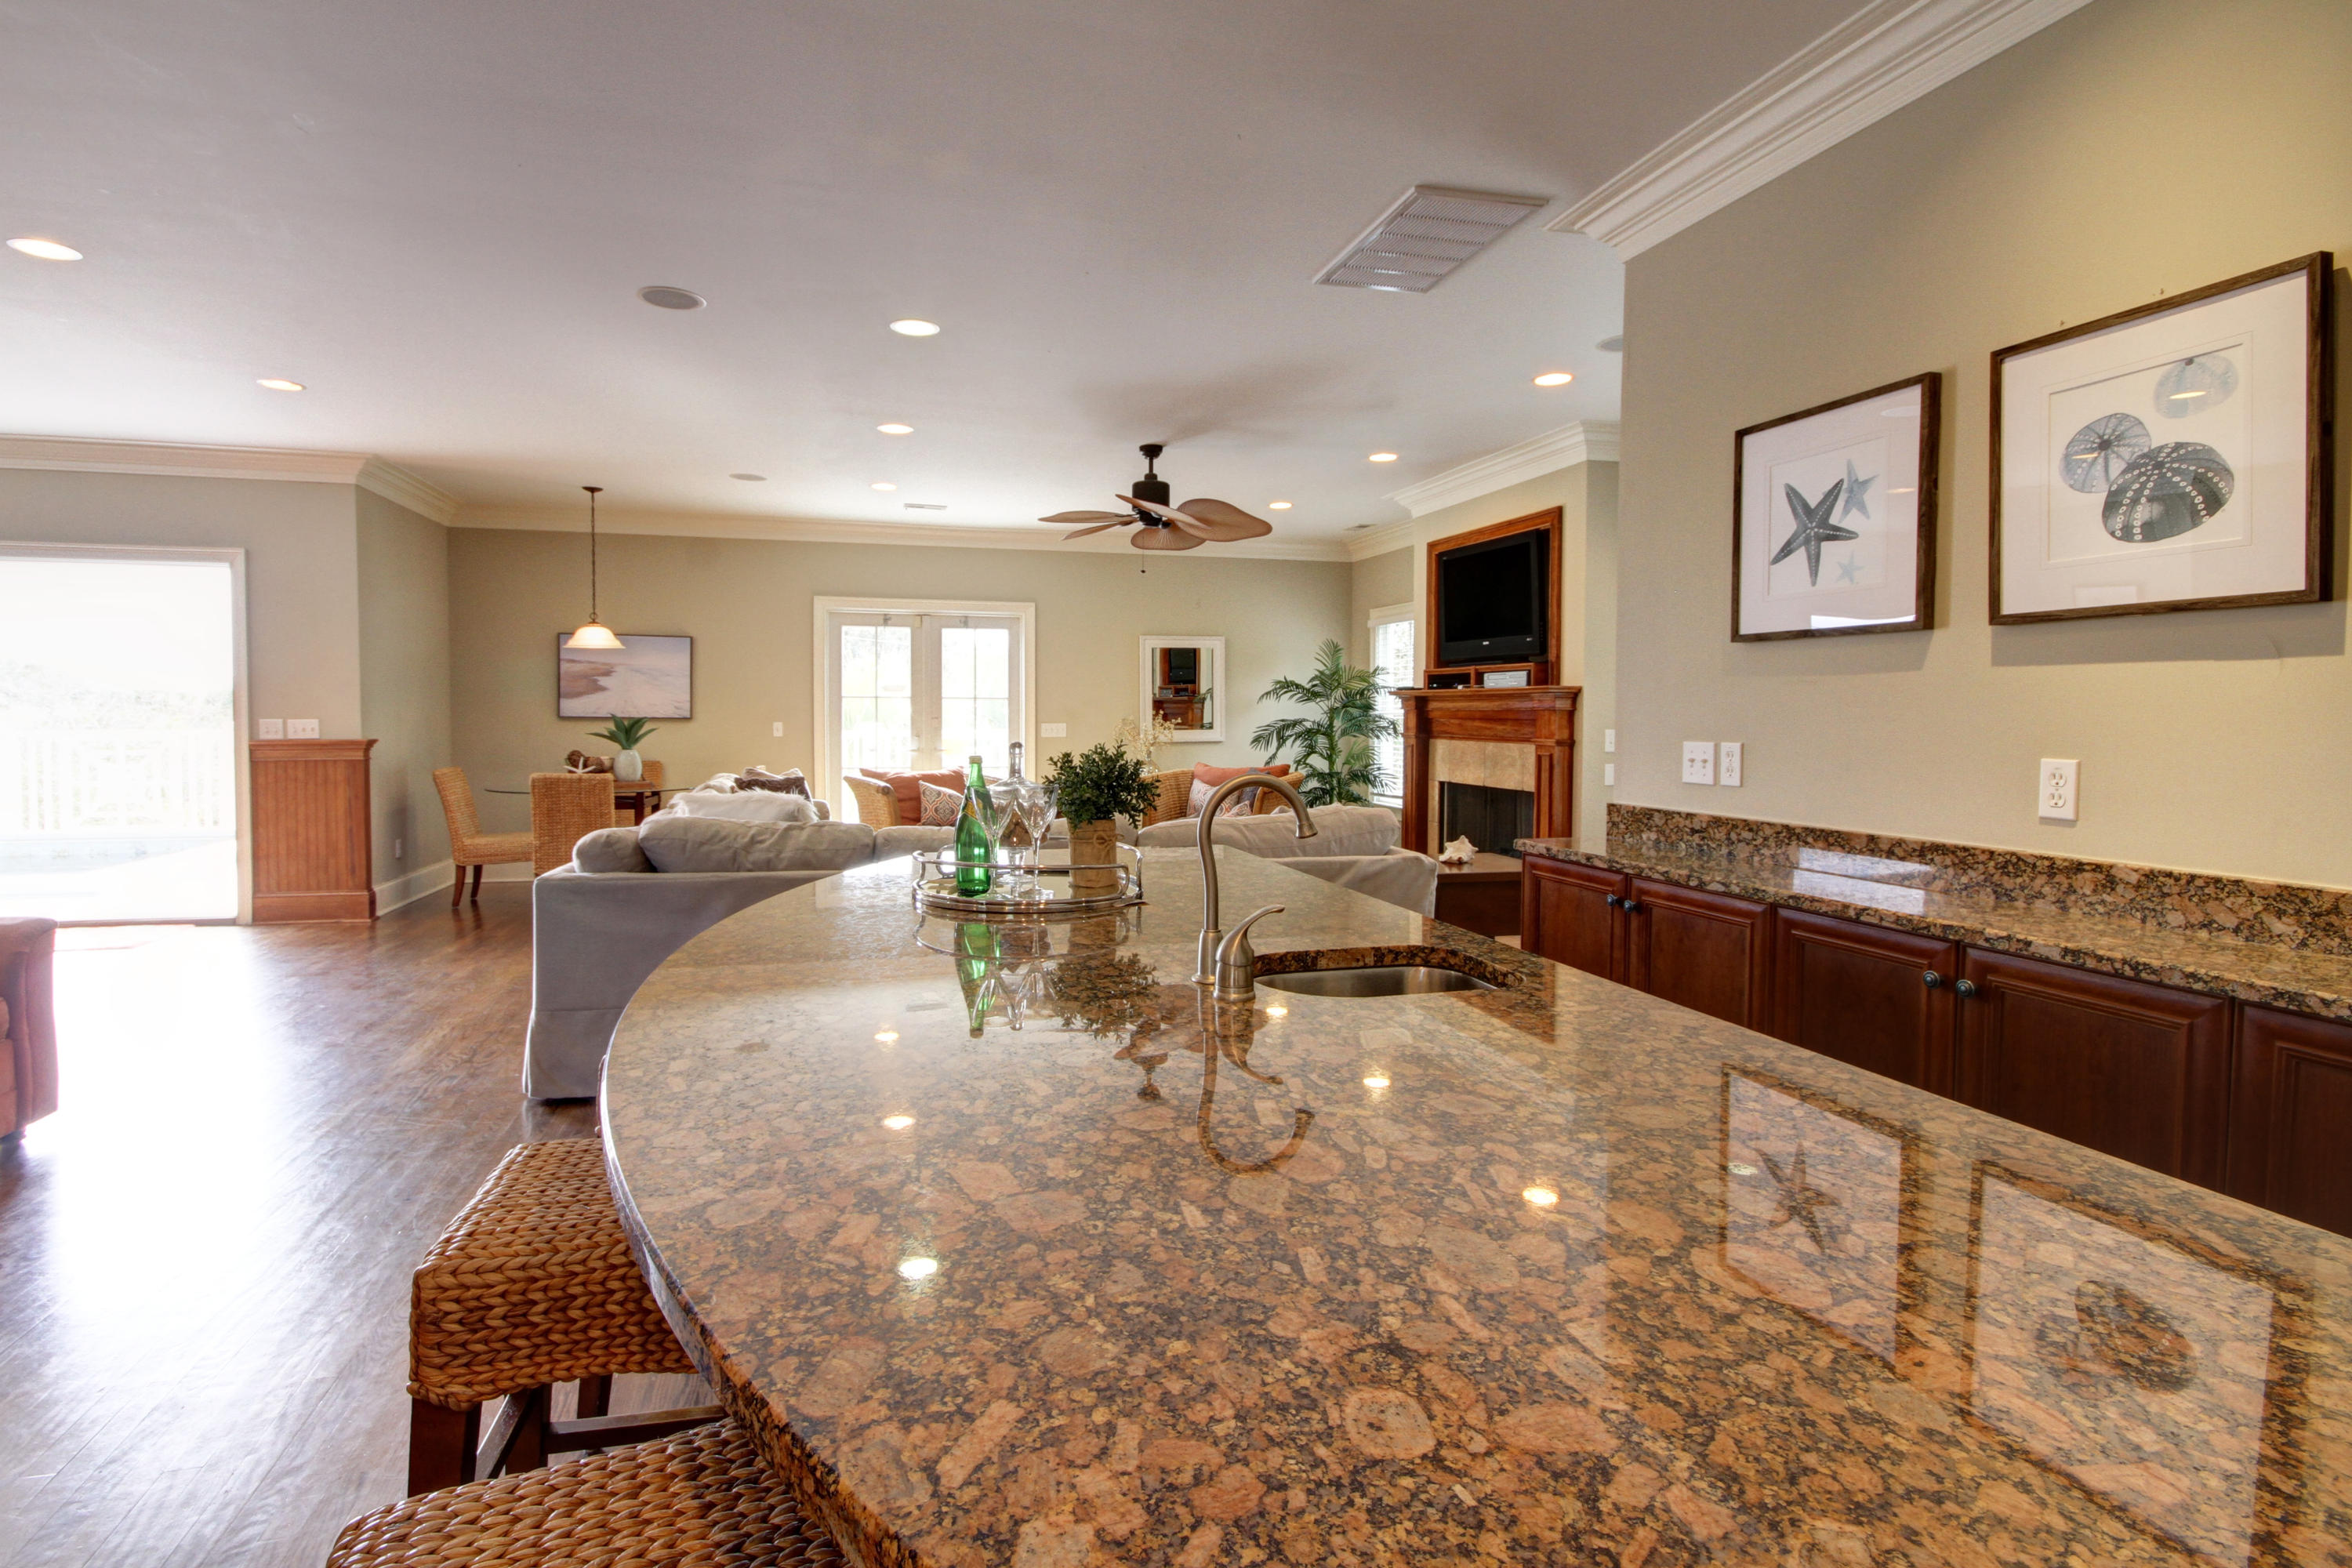 Wild Dunes Homes For Sale - 7 Abalone, Isle of Palms, SC - 73